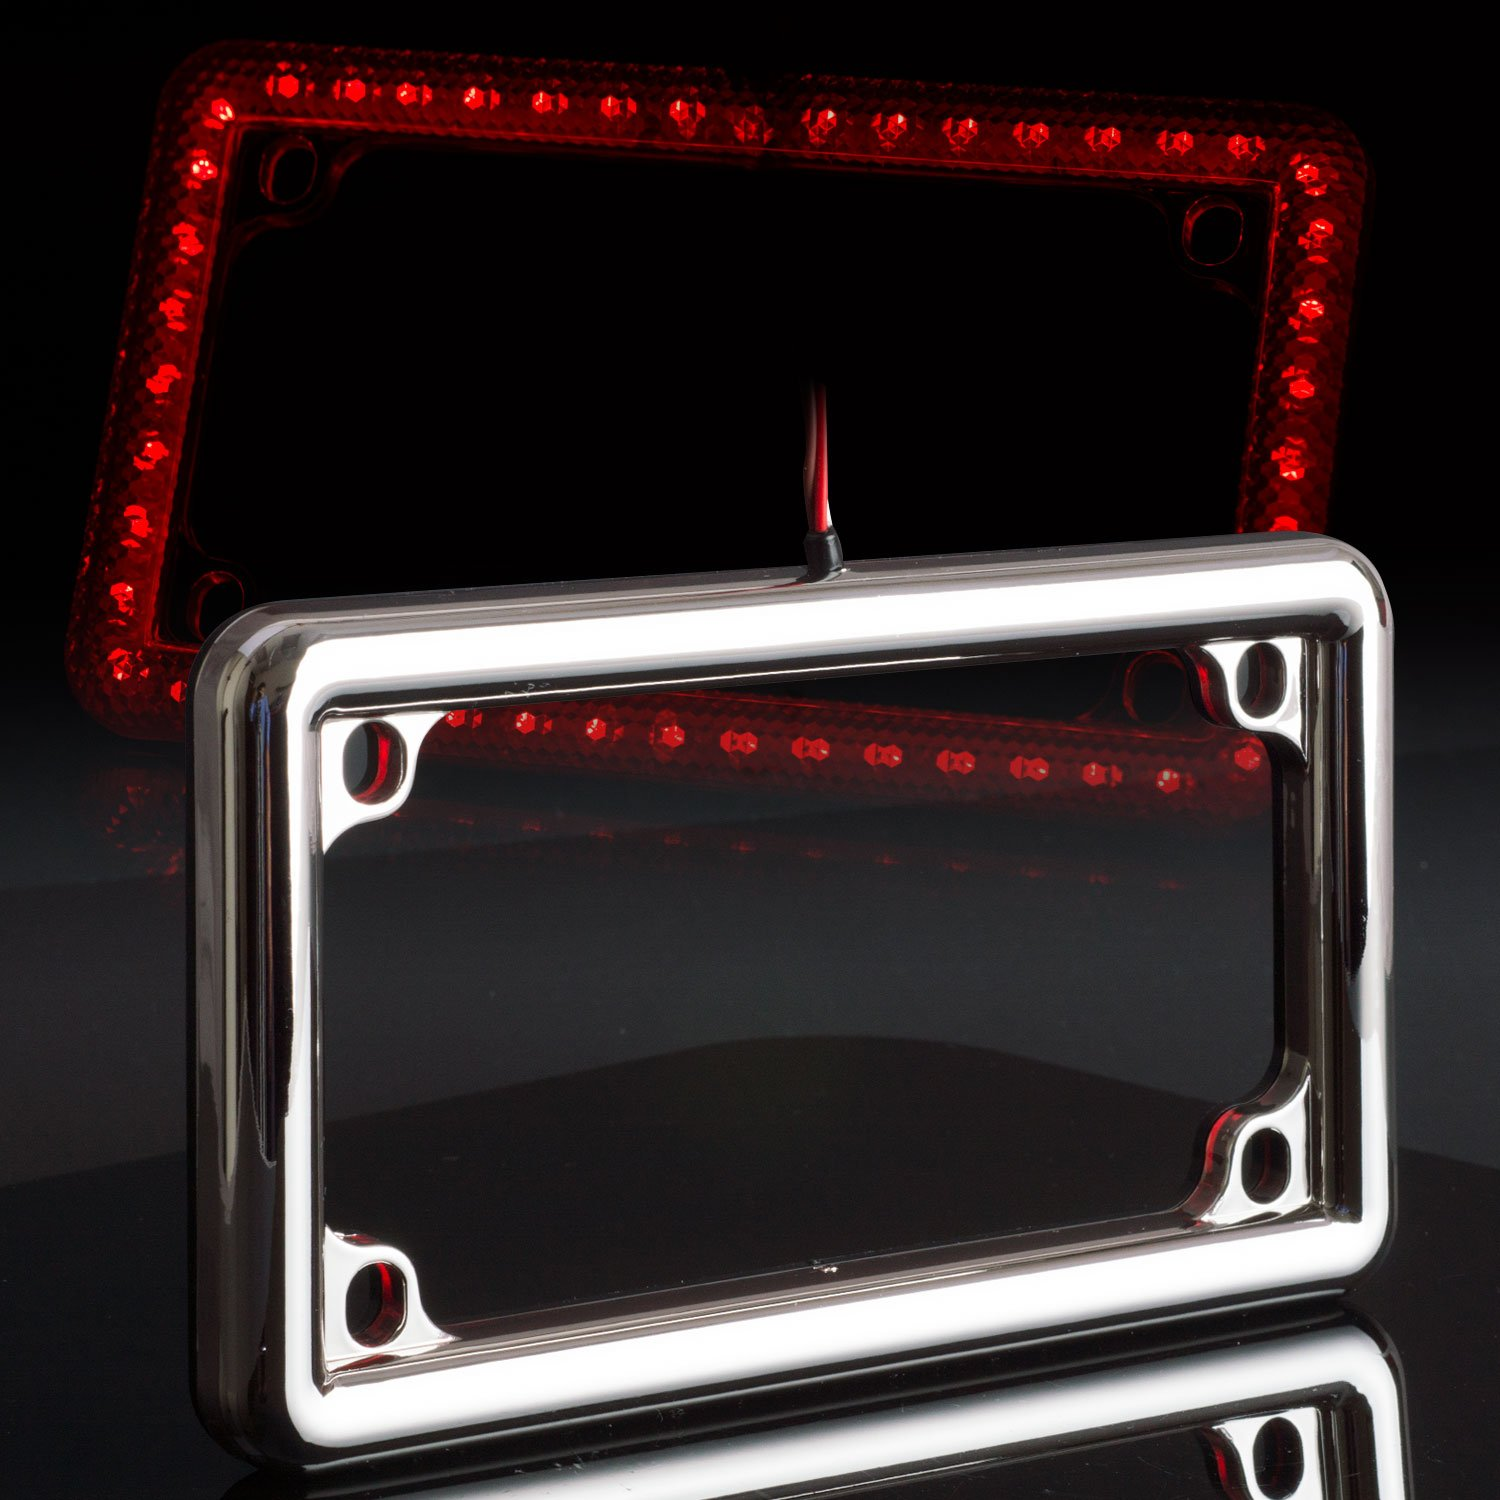 Motorcycle License Plate Frame Universal 12V LED Lighting (2Function, Black) Bosswell 6672